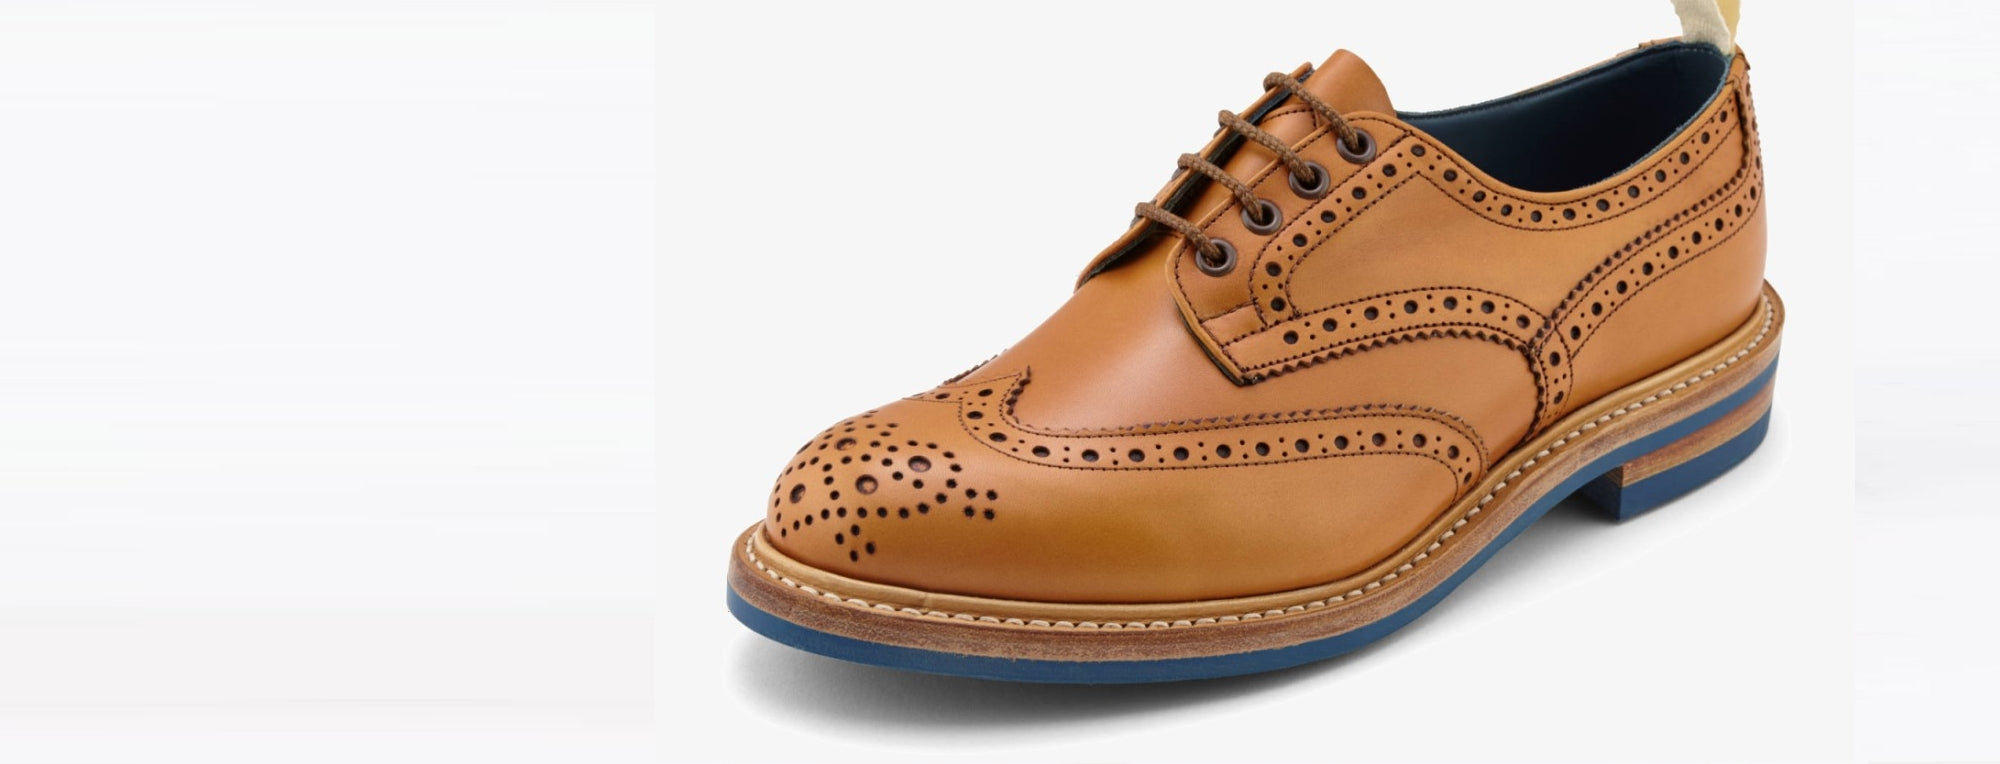 trickers bourton revival